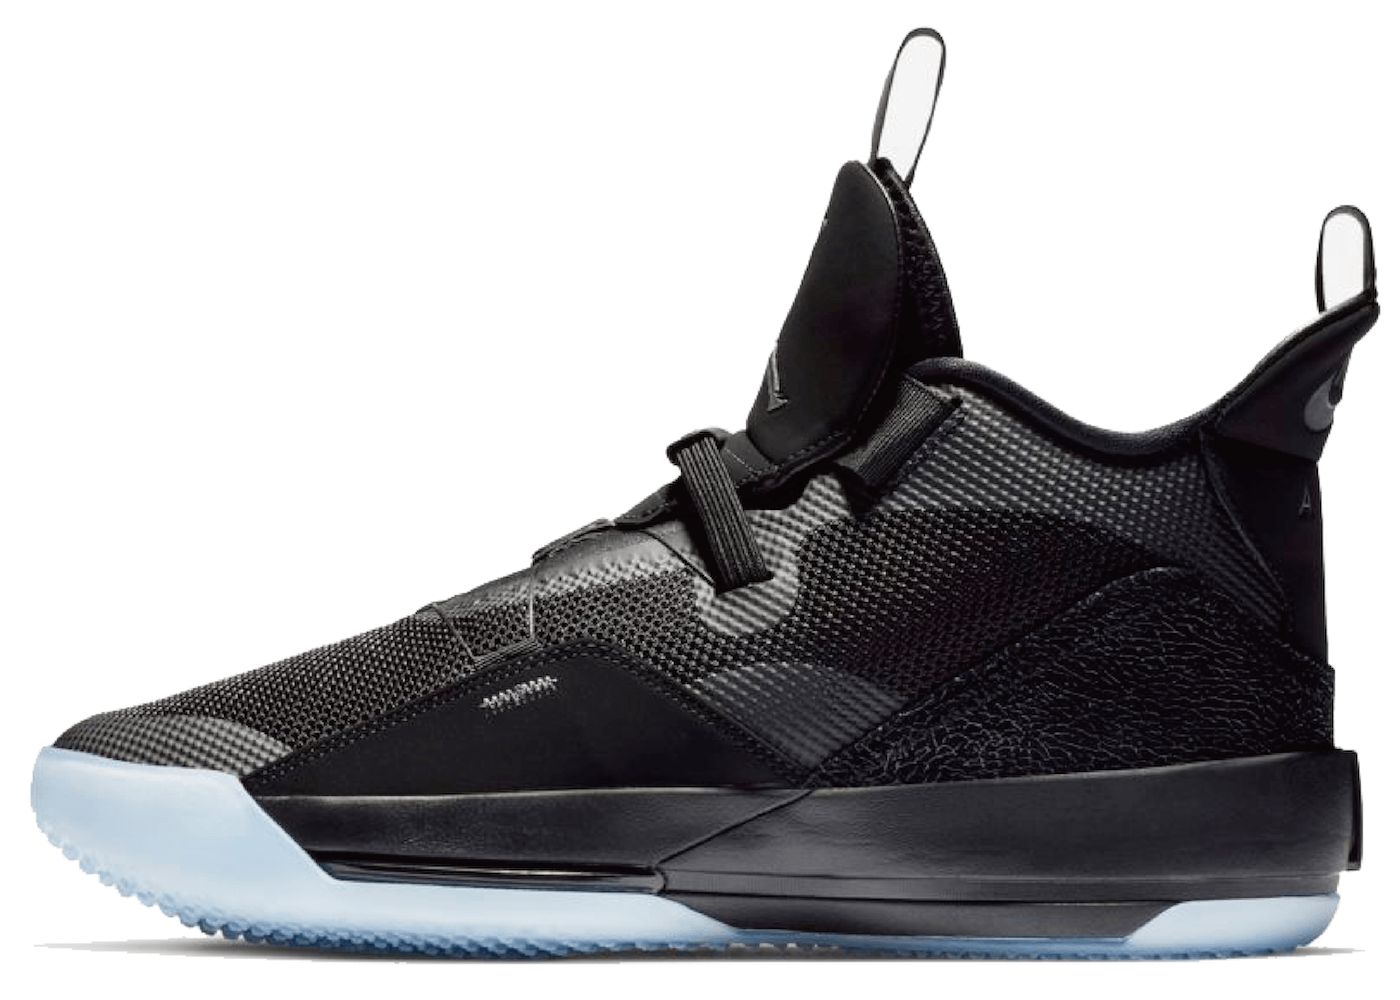 Nike Air Jordan 33 Blackoutの写真